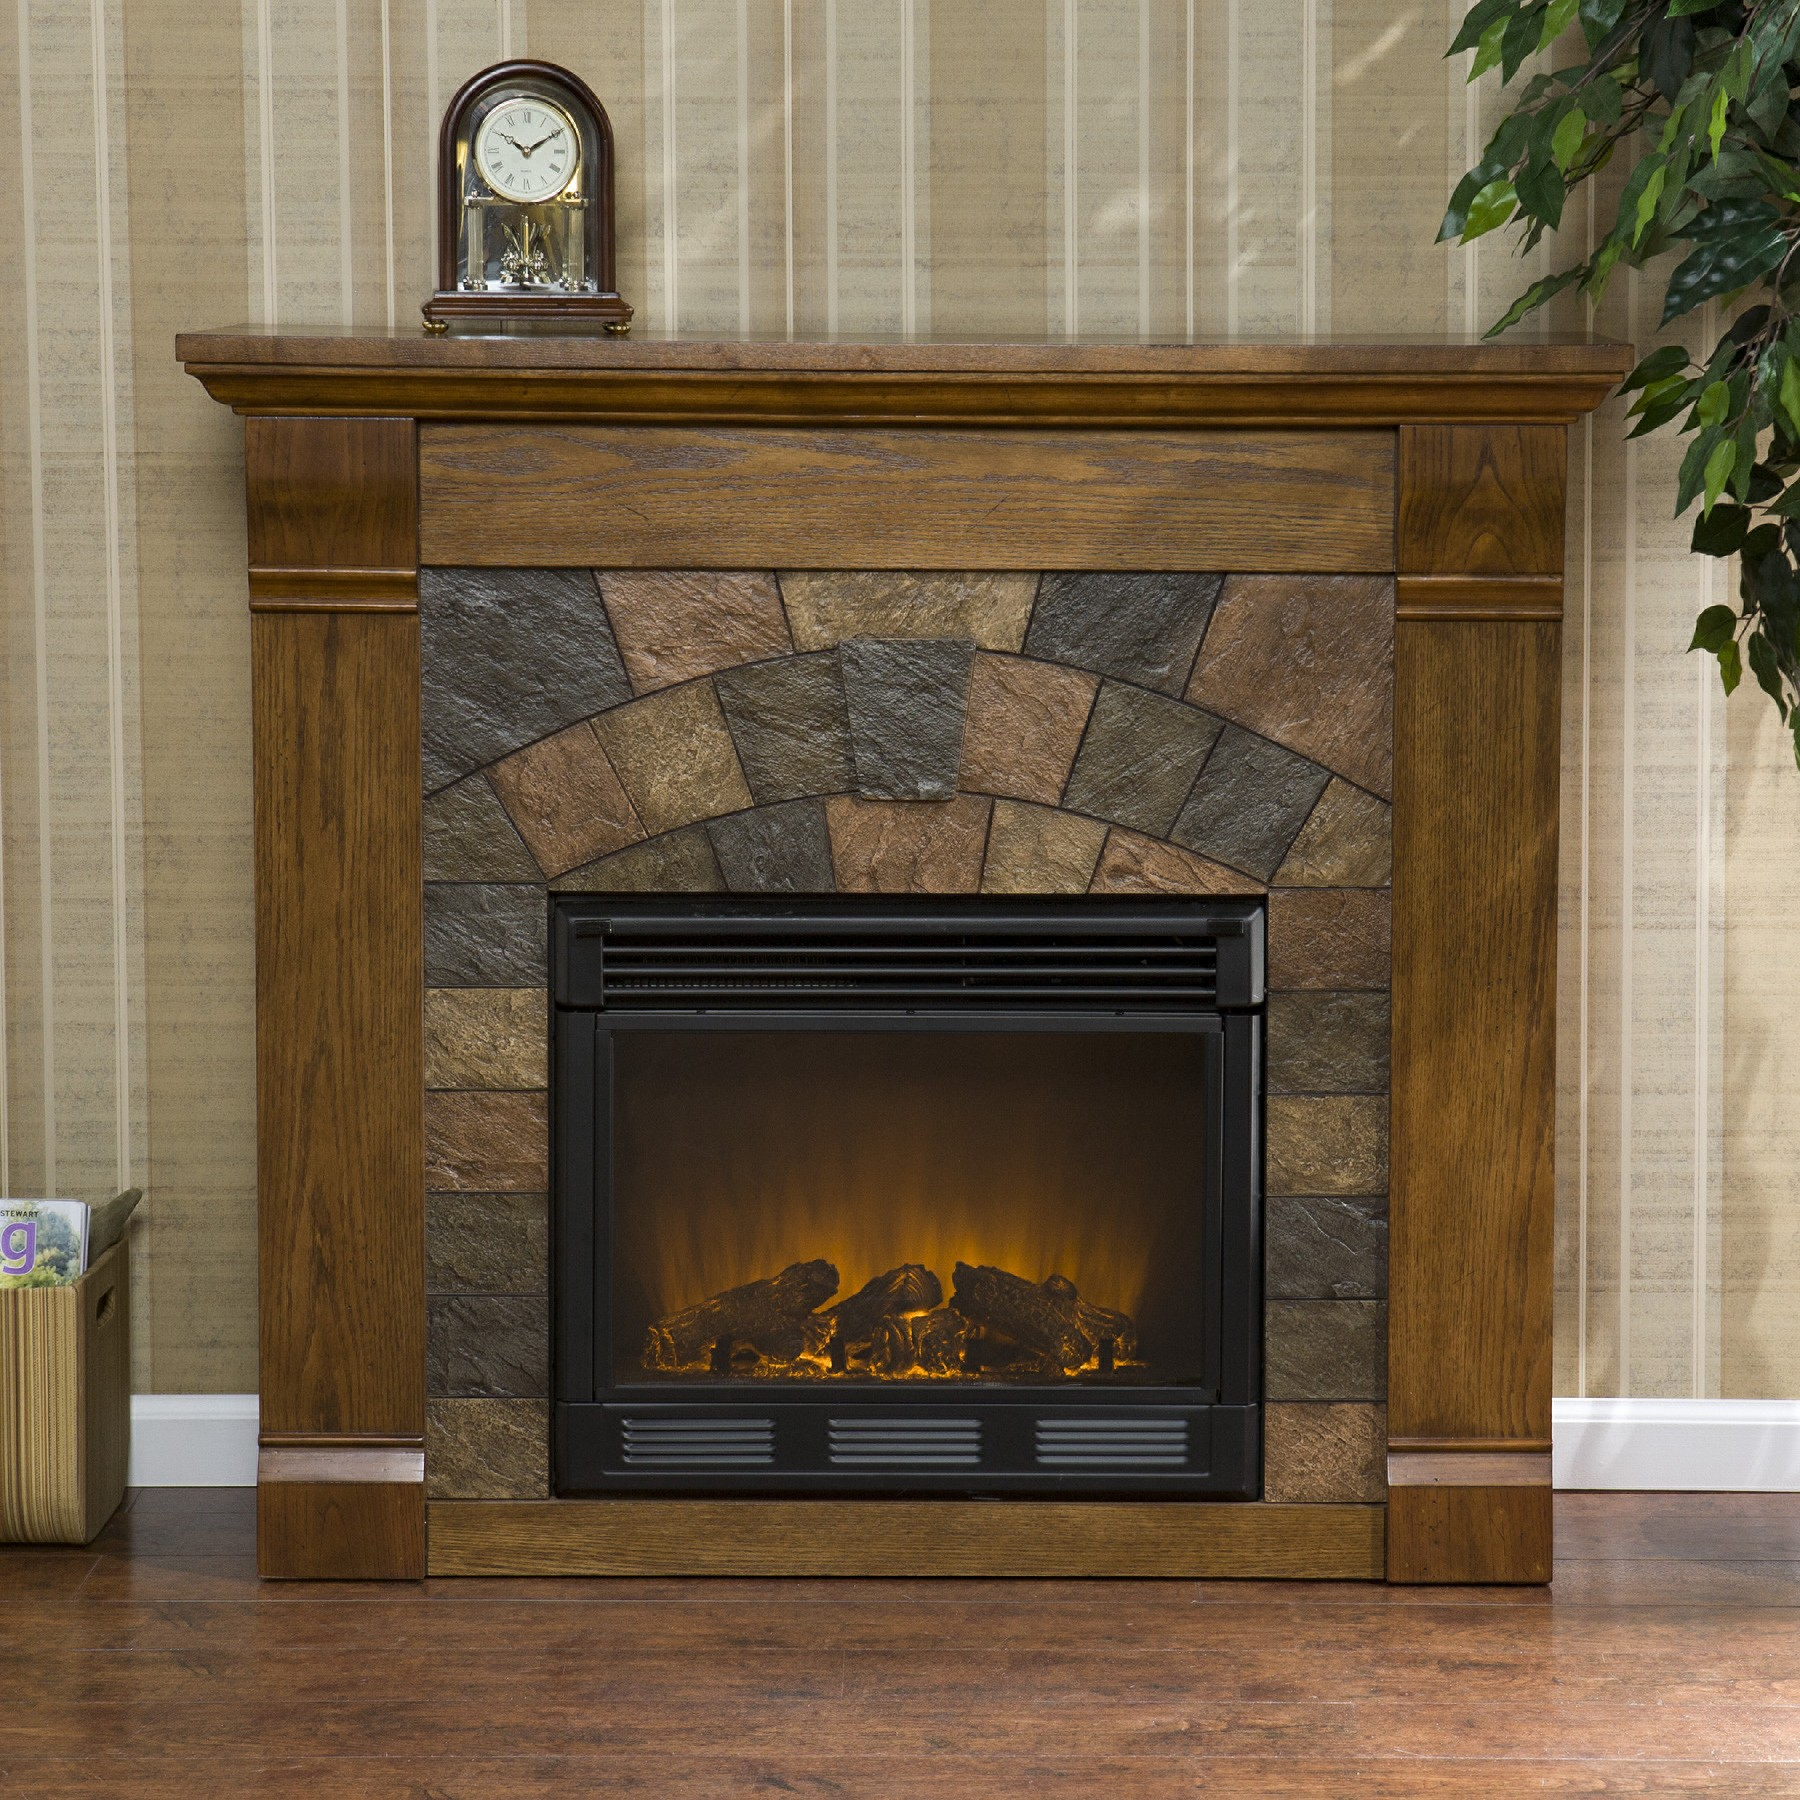 Mdf Fireplace Mantel Kits | Where to Buy Fireplace Mantels | Lowes Fireplace Mantel